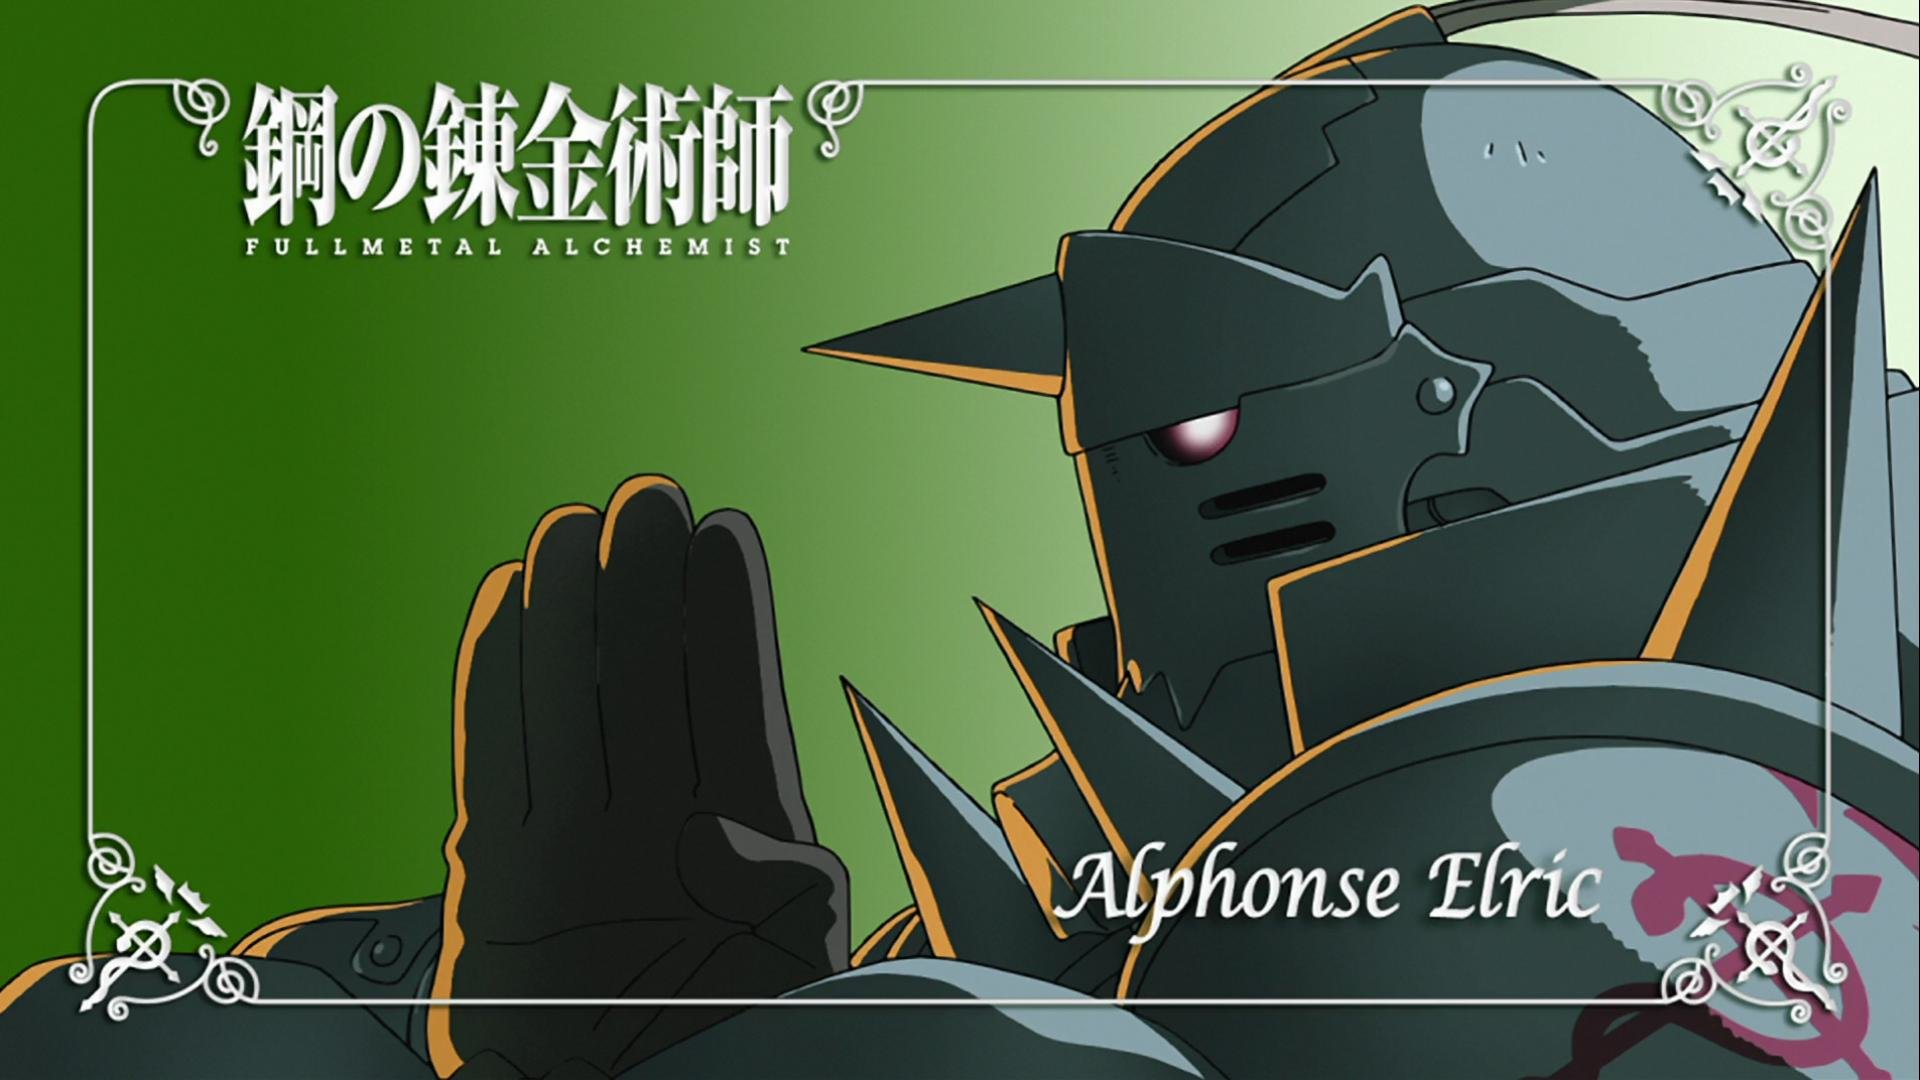 High resolution FullMetal Alchemist (FMA) hd 1920x1080 wallpaper ID:310972 for desktop